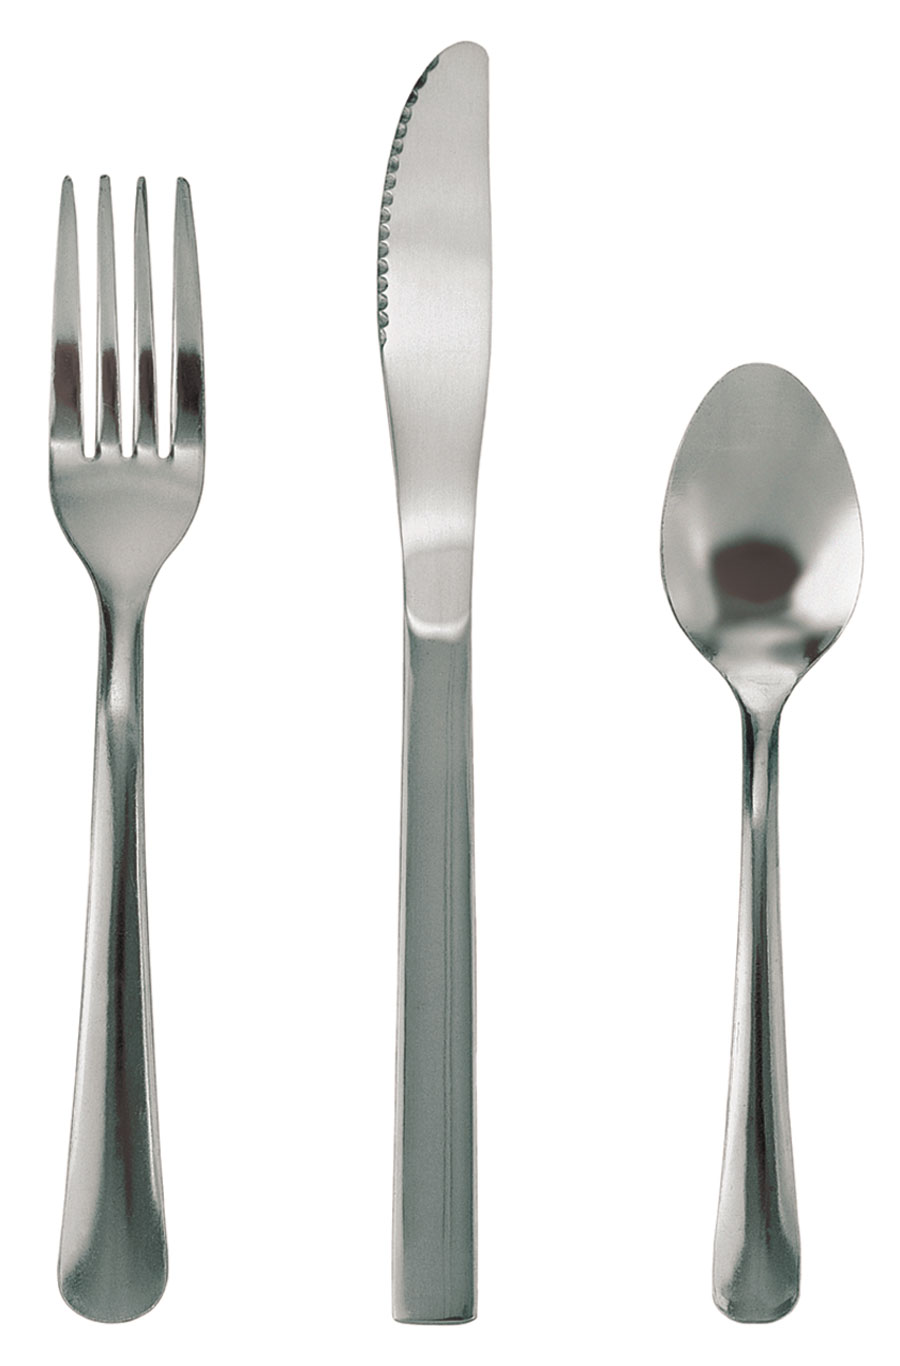 Update International WM-32B Windsor Medium Weight Bouillon Spoon - 1 doz